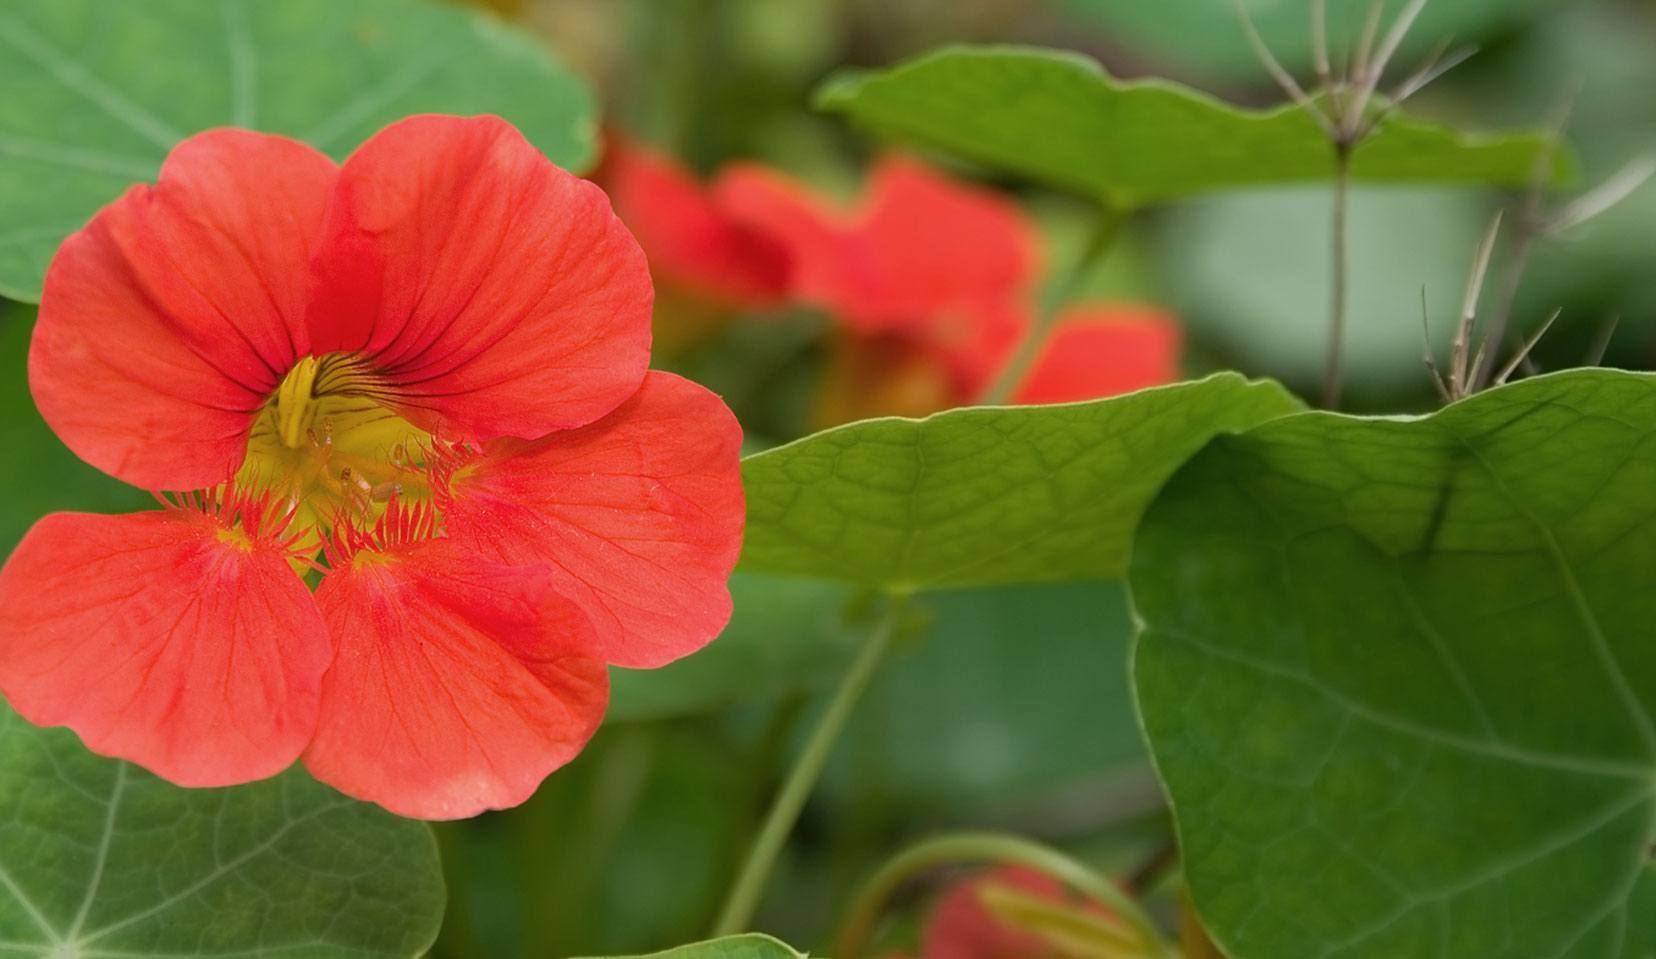 Nasturtium - The nasturtium appears to combine in itself irreconcilable opposites. The succulent leaves are a strong expression of its aqueous element. They are topped by the flowers like little crowns of fire which have a bird-like, airy quality. Water and fire are also combined within the nasturtium, all the cells being filled with a water-soluble form of the sulfuric, fiery benzyl mustard oil. The balancing properties make nasturtium helpful to products for oily, blemished skin.